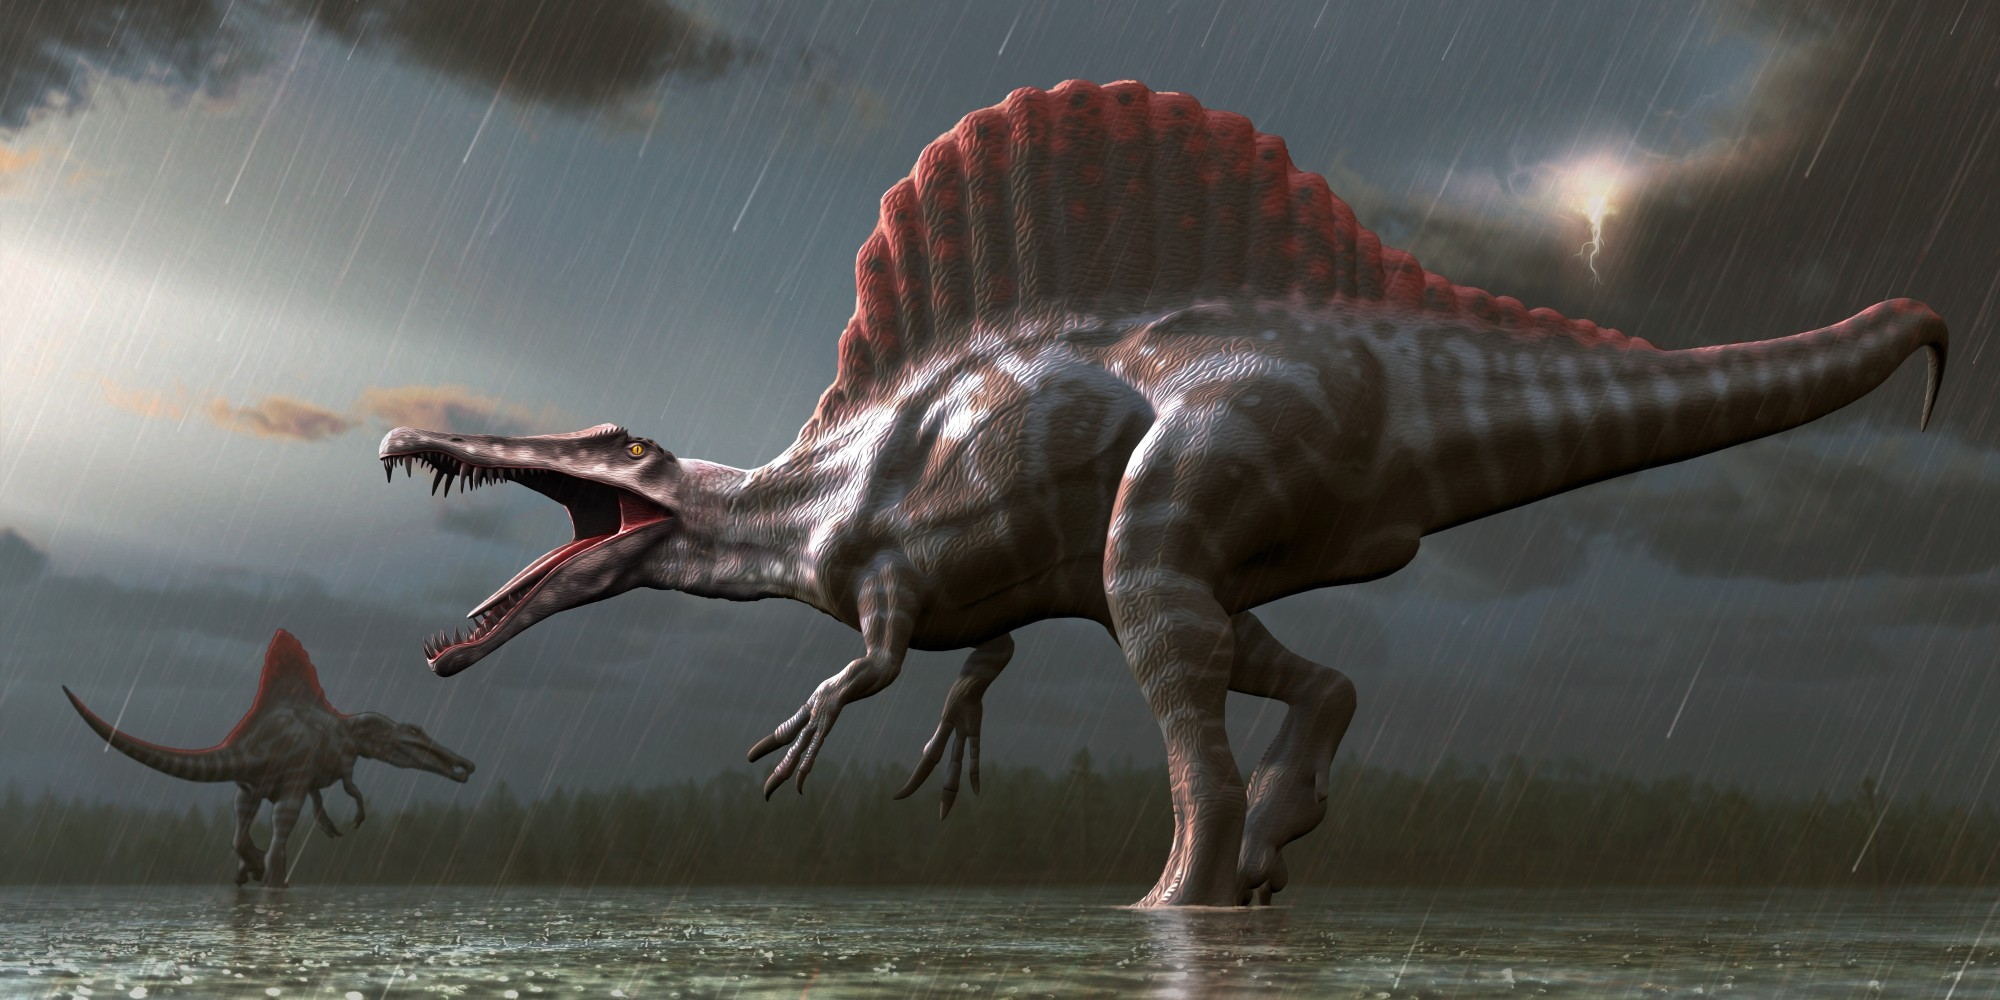 Dinosaur Feathers Study Suggests Most Species Had Scales ...